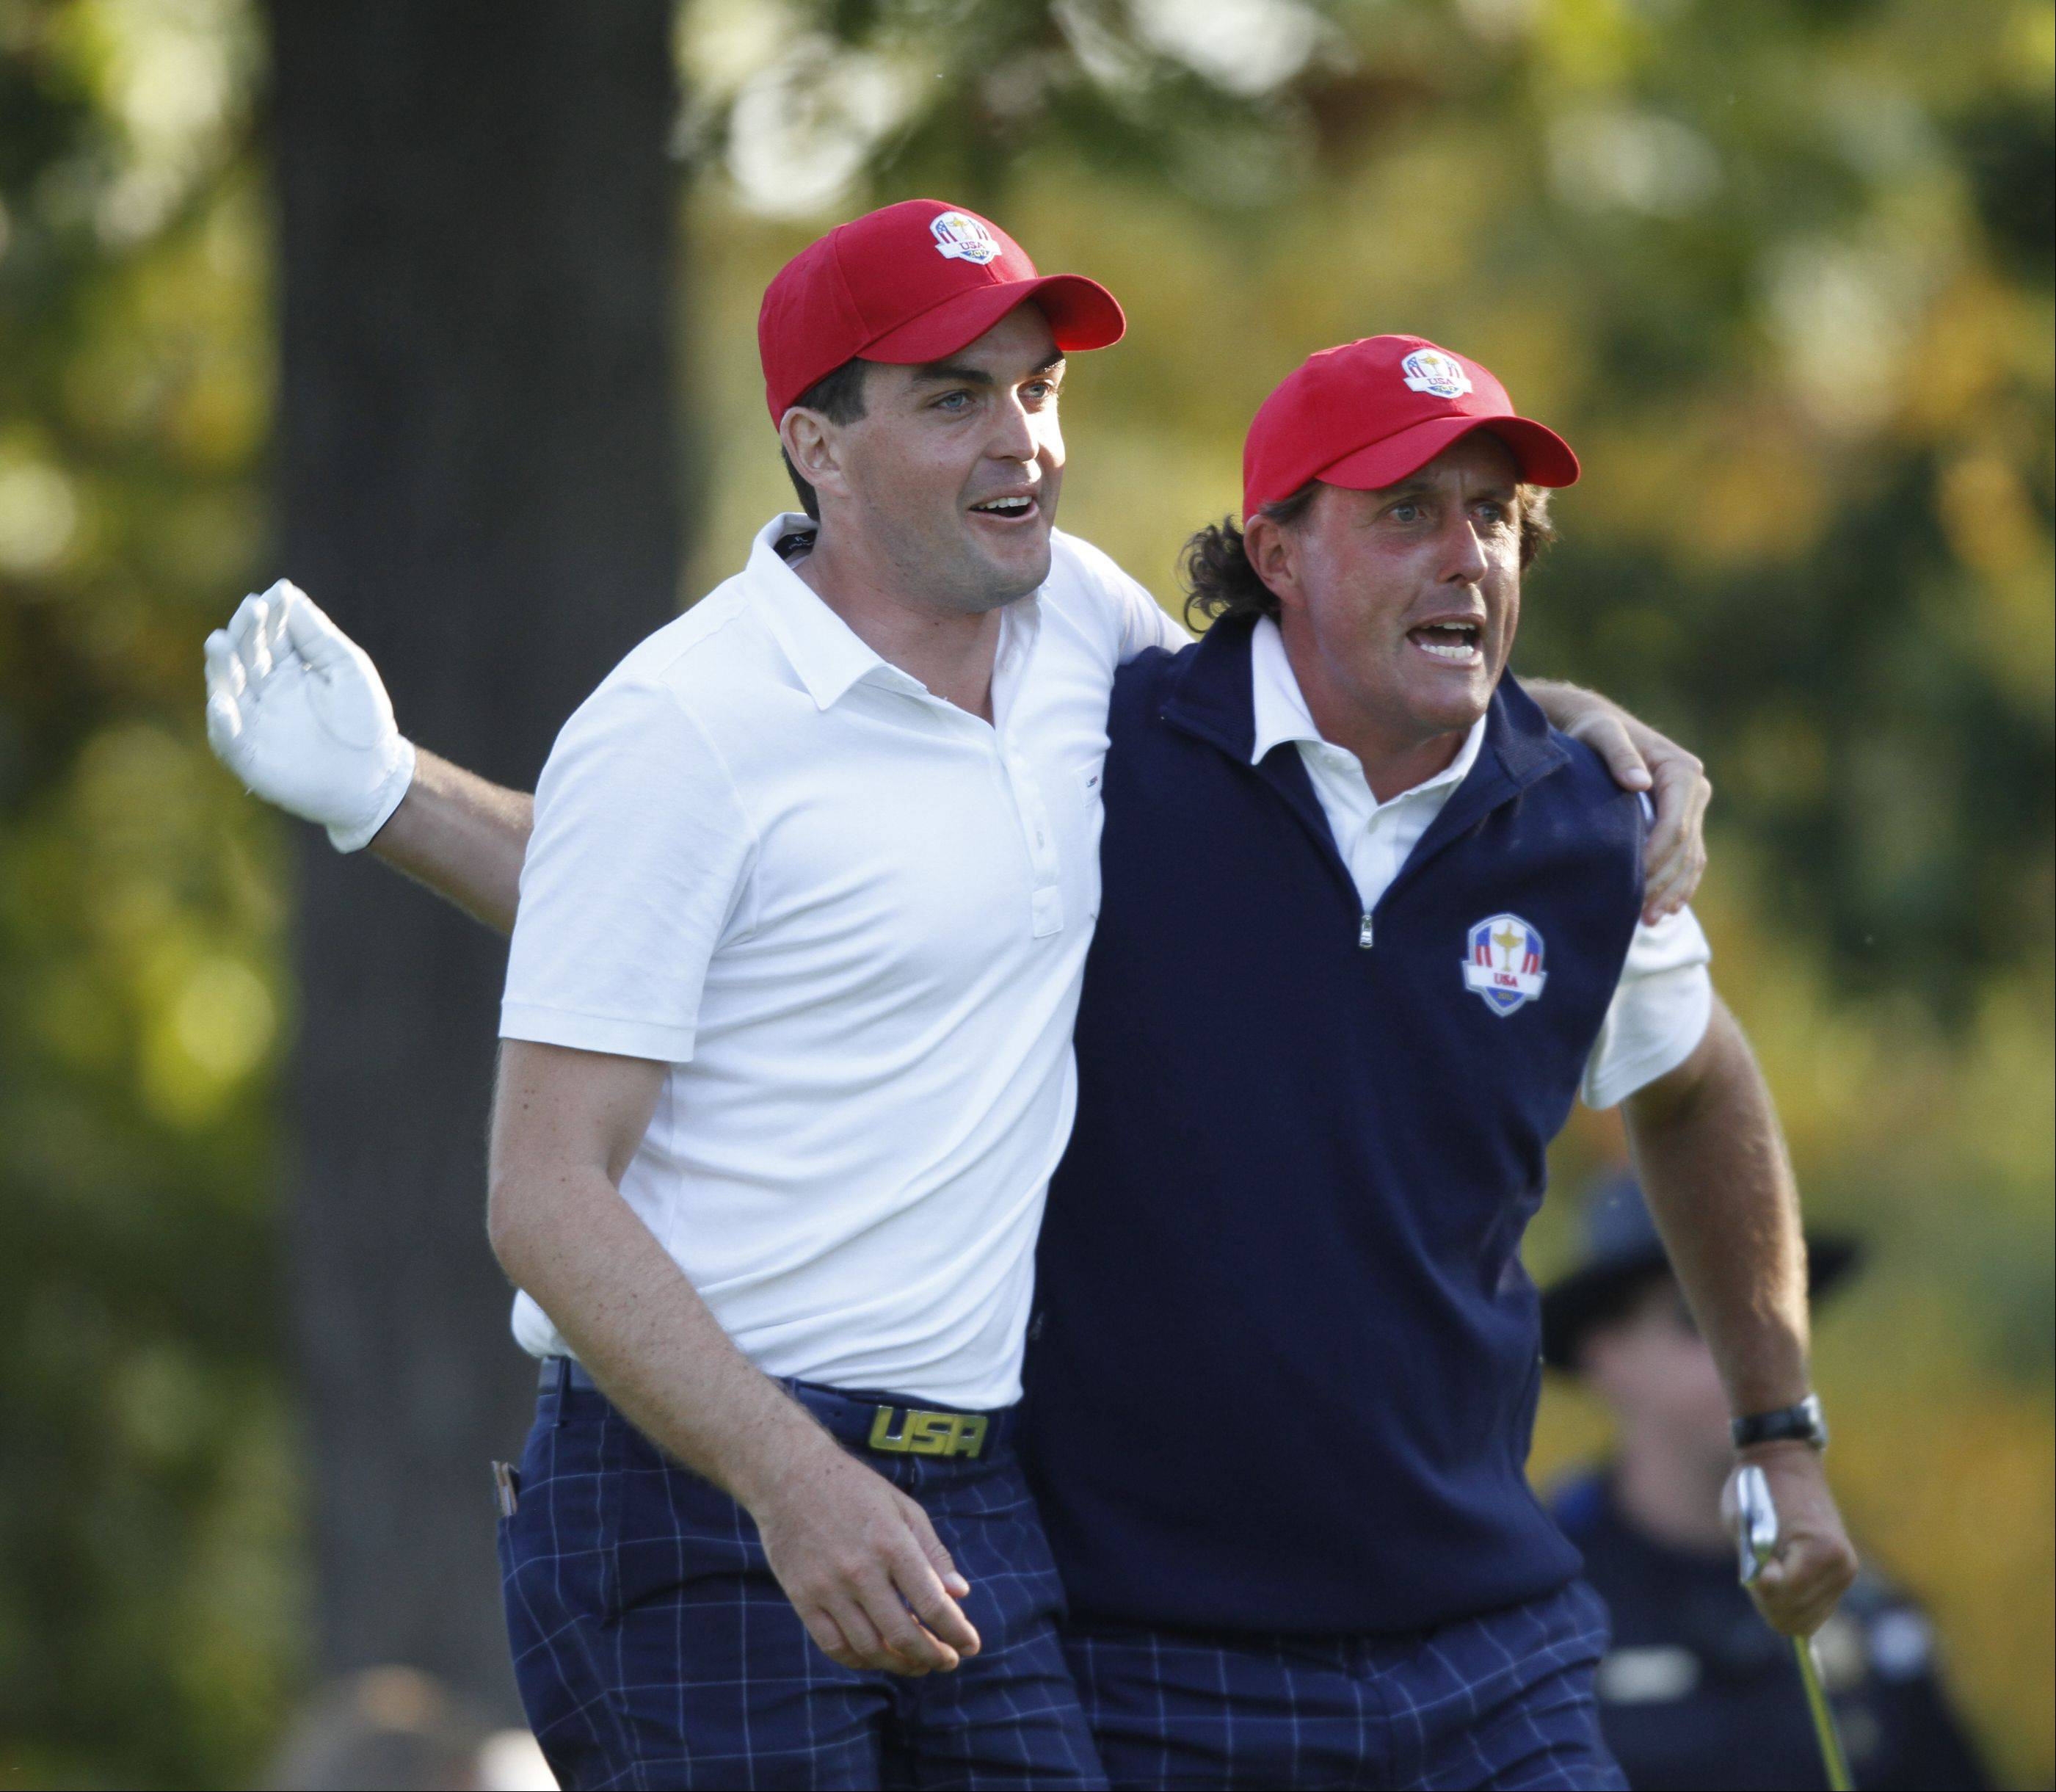 Keegan Bradley, left, and Phil Mickelson congratulate each other after Mickelson�s drive on the 17th hole land just feet from the cup. That drive clinched the match for their round and gave the US team another point Friday afternoon at the 2012 Ryder Cup at Medinah Country Club.